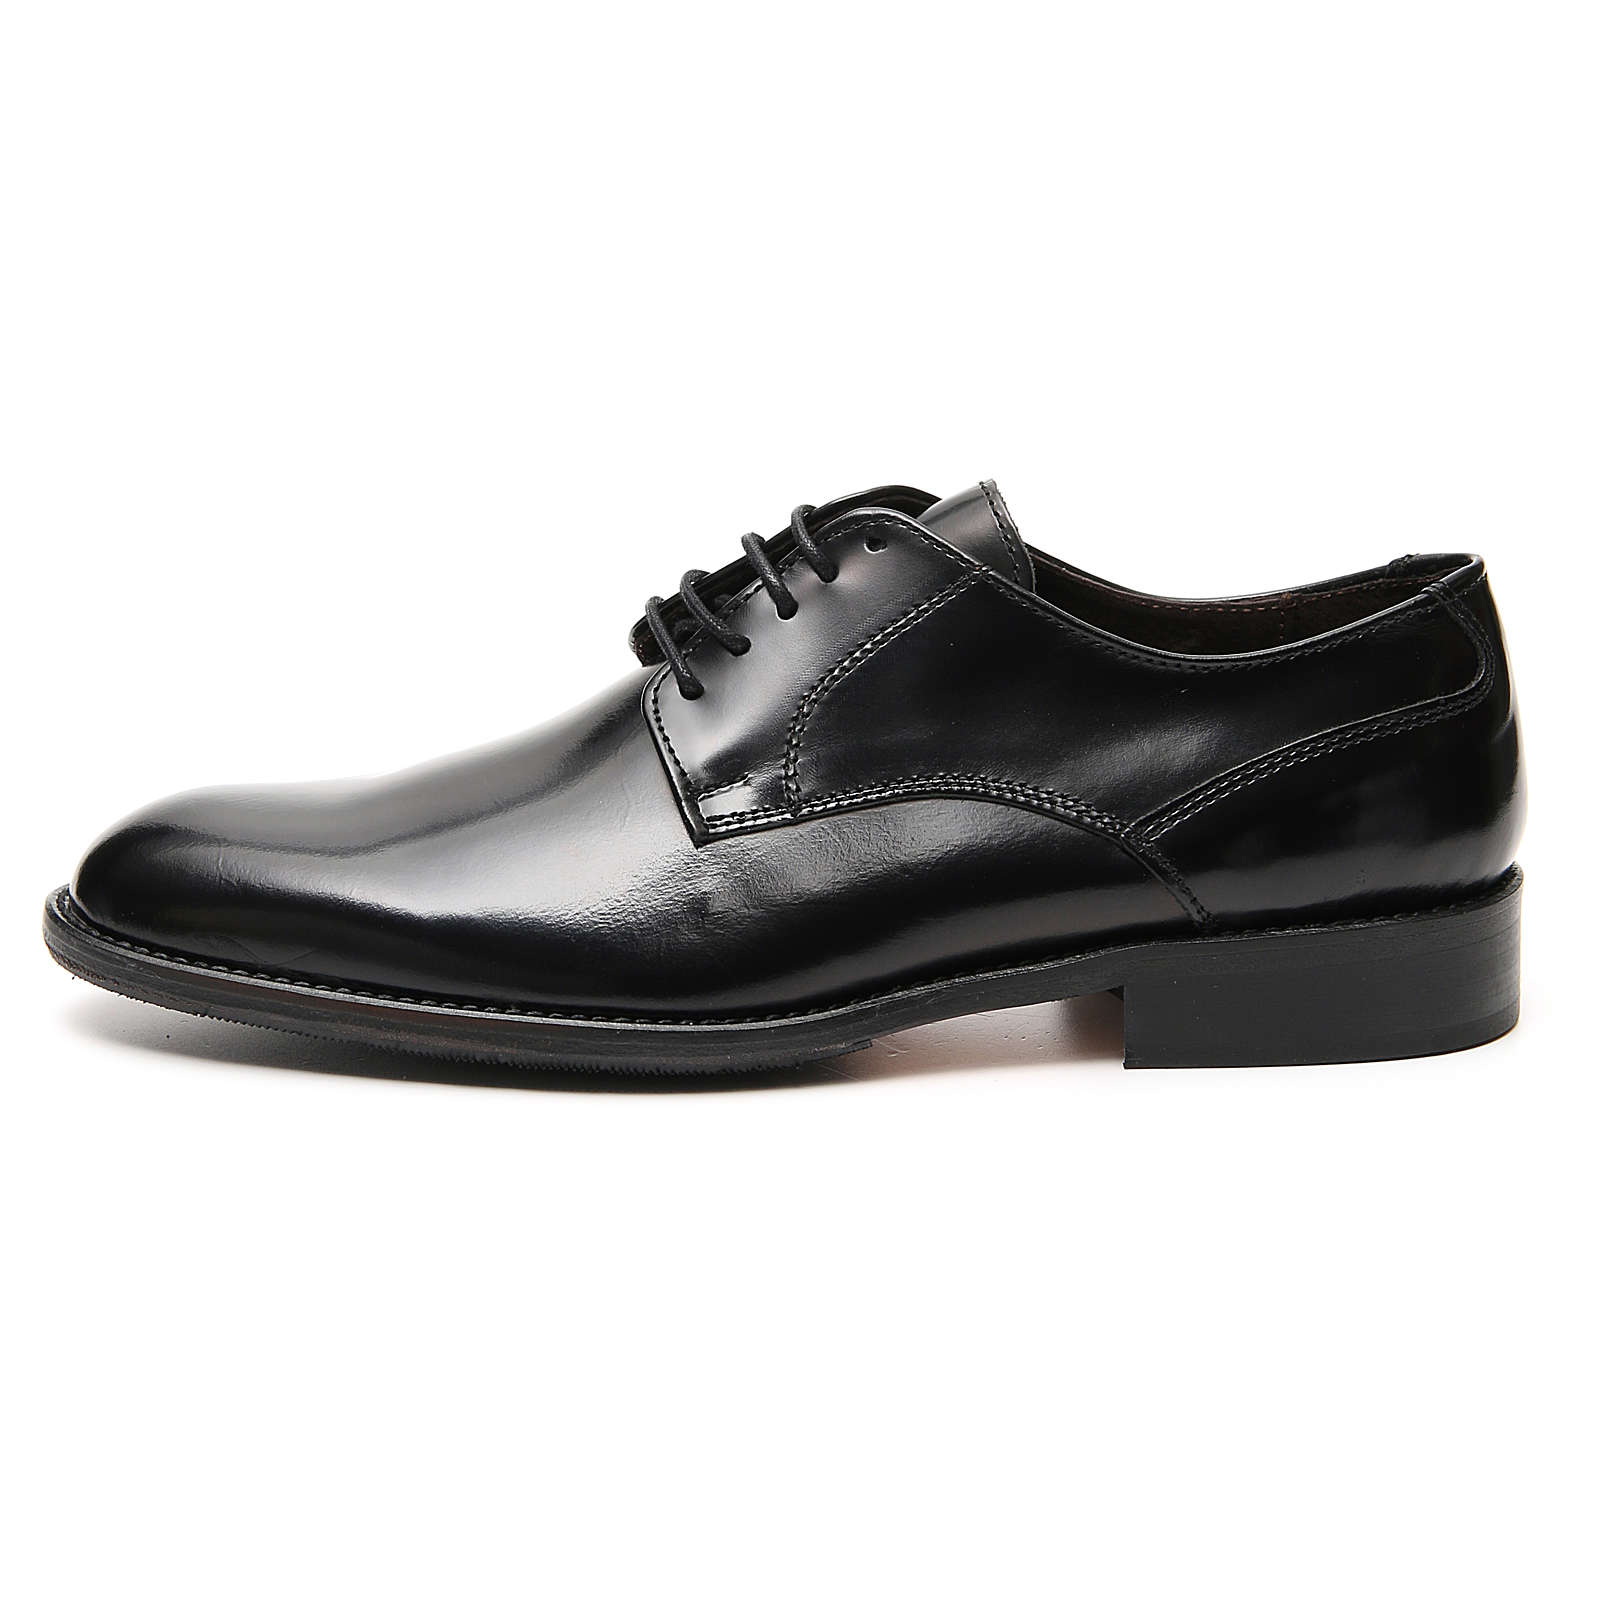 Shoes in polished real black leather 4